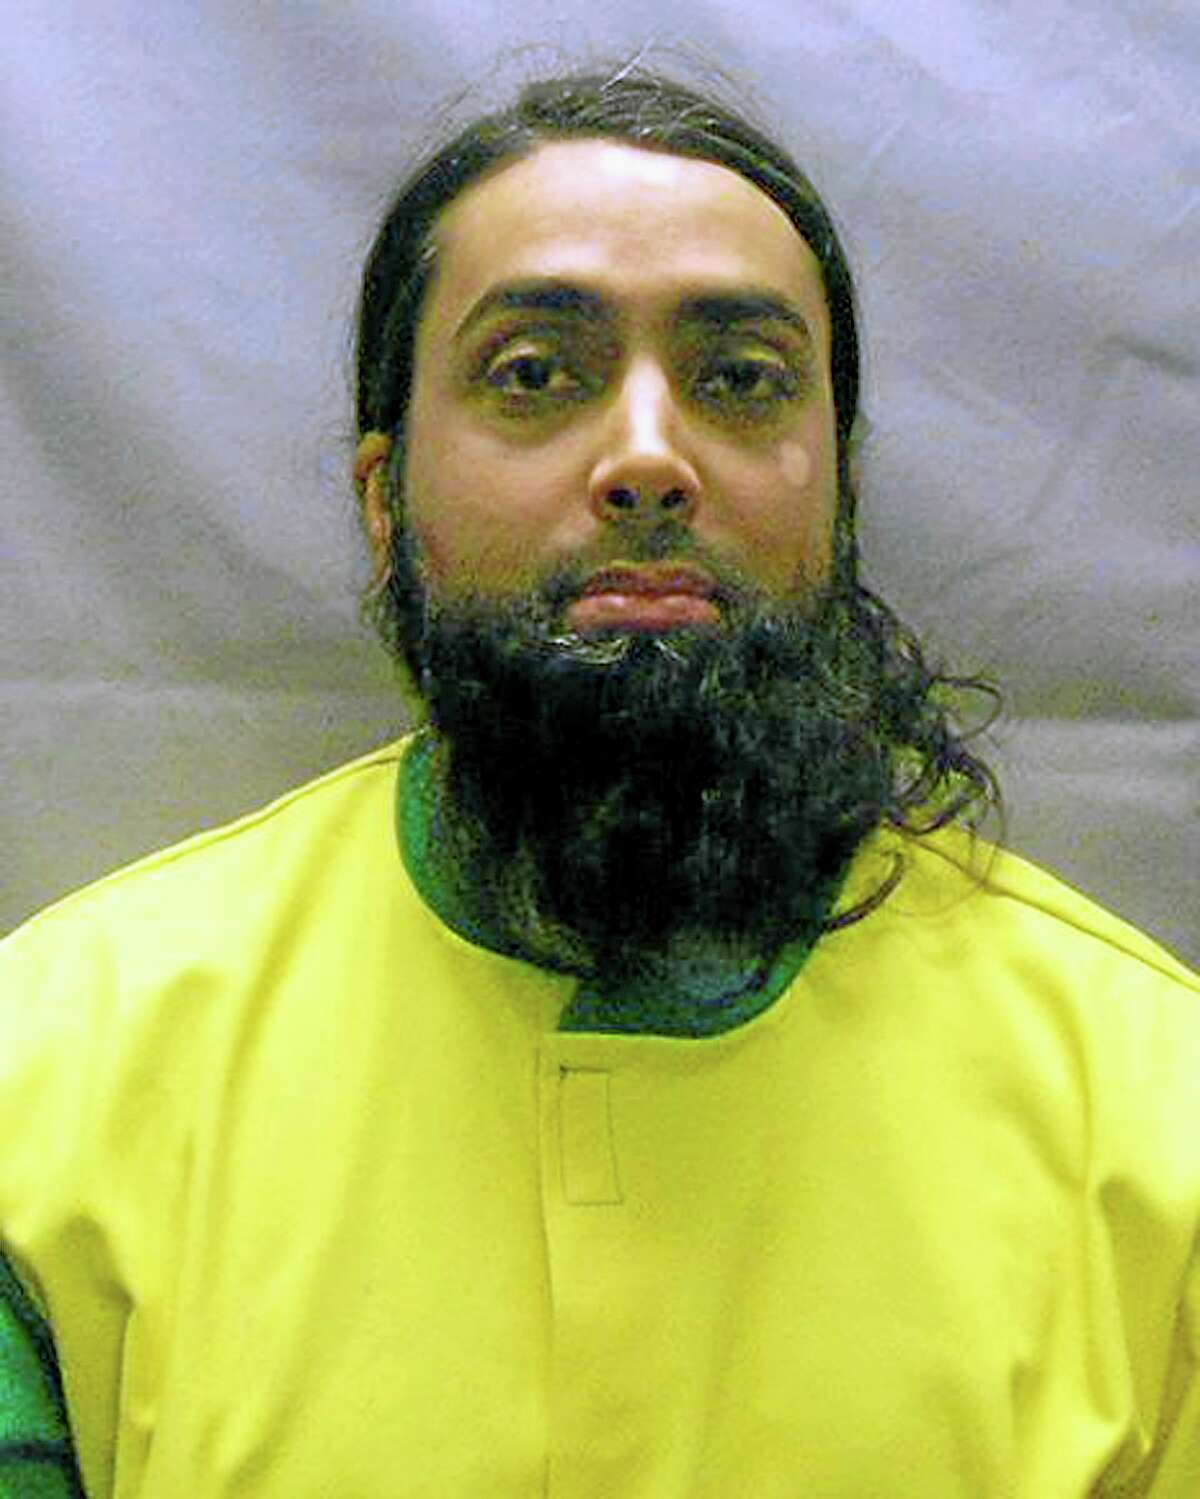 This Nov. 9, 2012, file photo provided by the U.S. Attorney's Office shows Syed Talha Ahsan, extradited with Babar Ahmad to the United States from Britain in October 2012 on charges of supporting terrorists through websites. The men, both British citizens, have pleaded guilty to the charges. Ahsan faces sentencing in federal court Thursday, July 17, 2014, in New Haven, Conn., for supporting terrorists through websites that sought to raise cash, recruits and solicit items such as gas masks for the Taliban regime in Afghanistan.